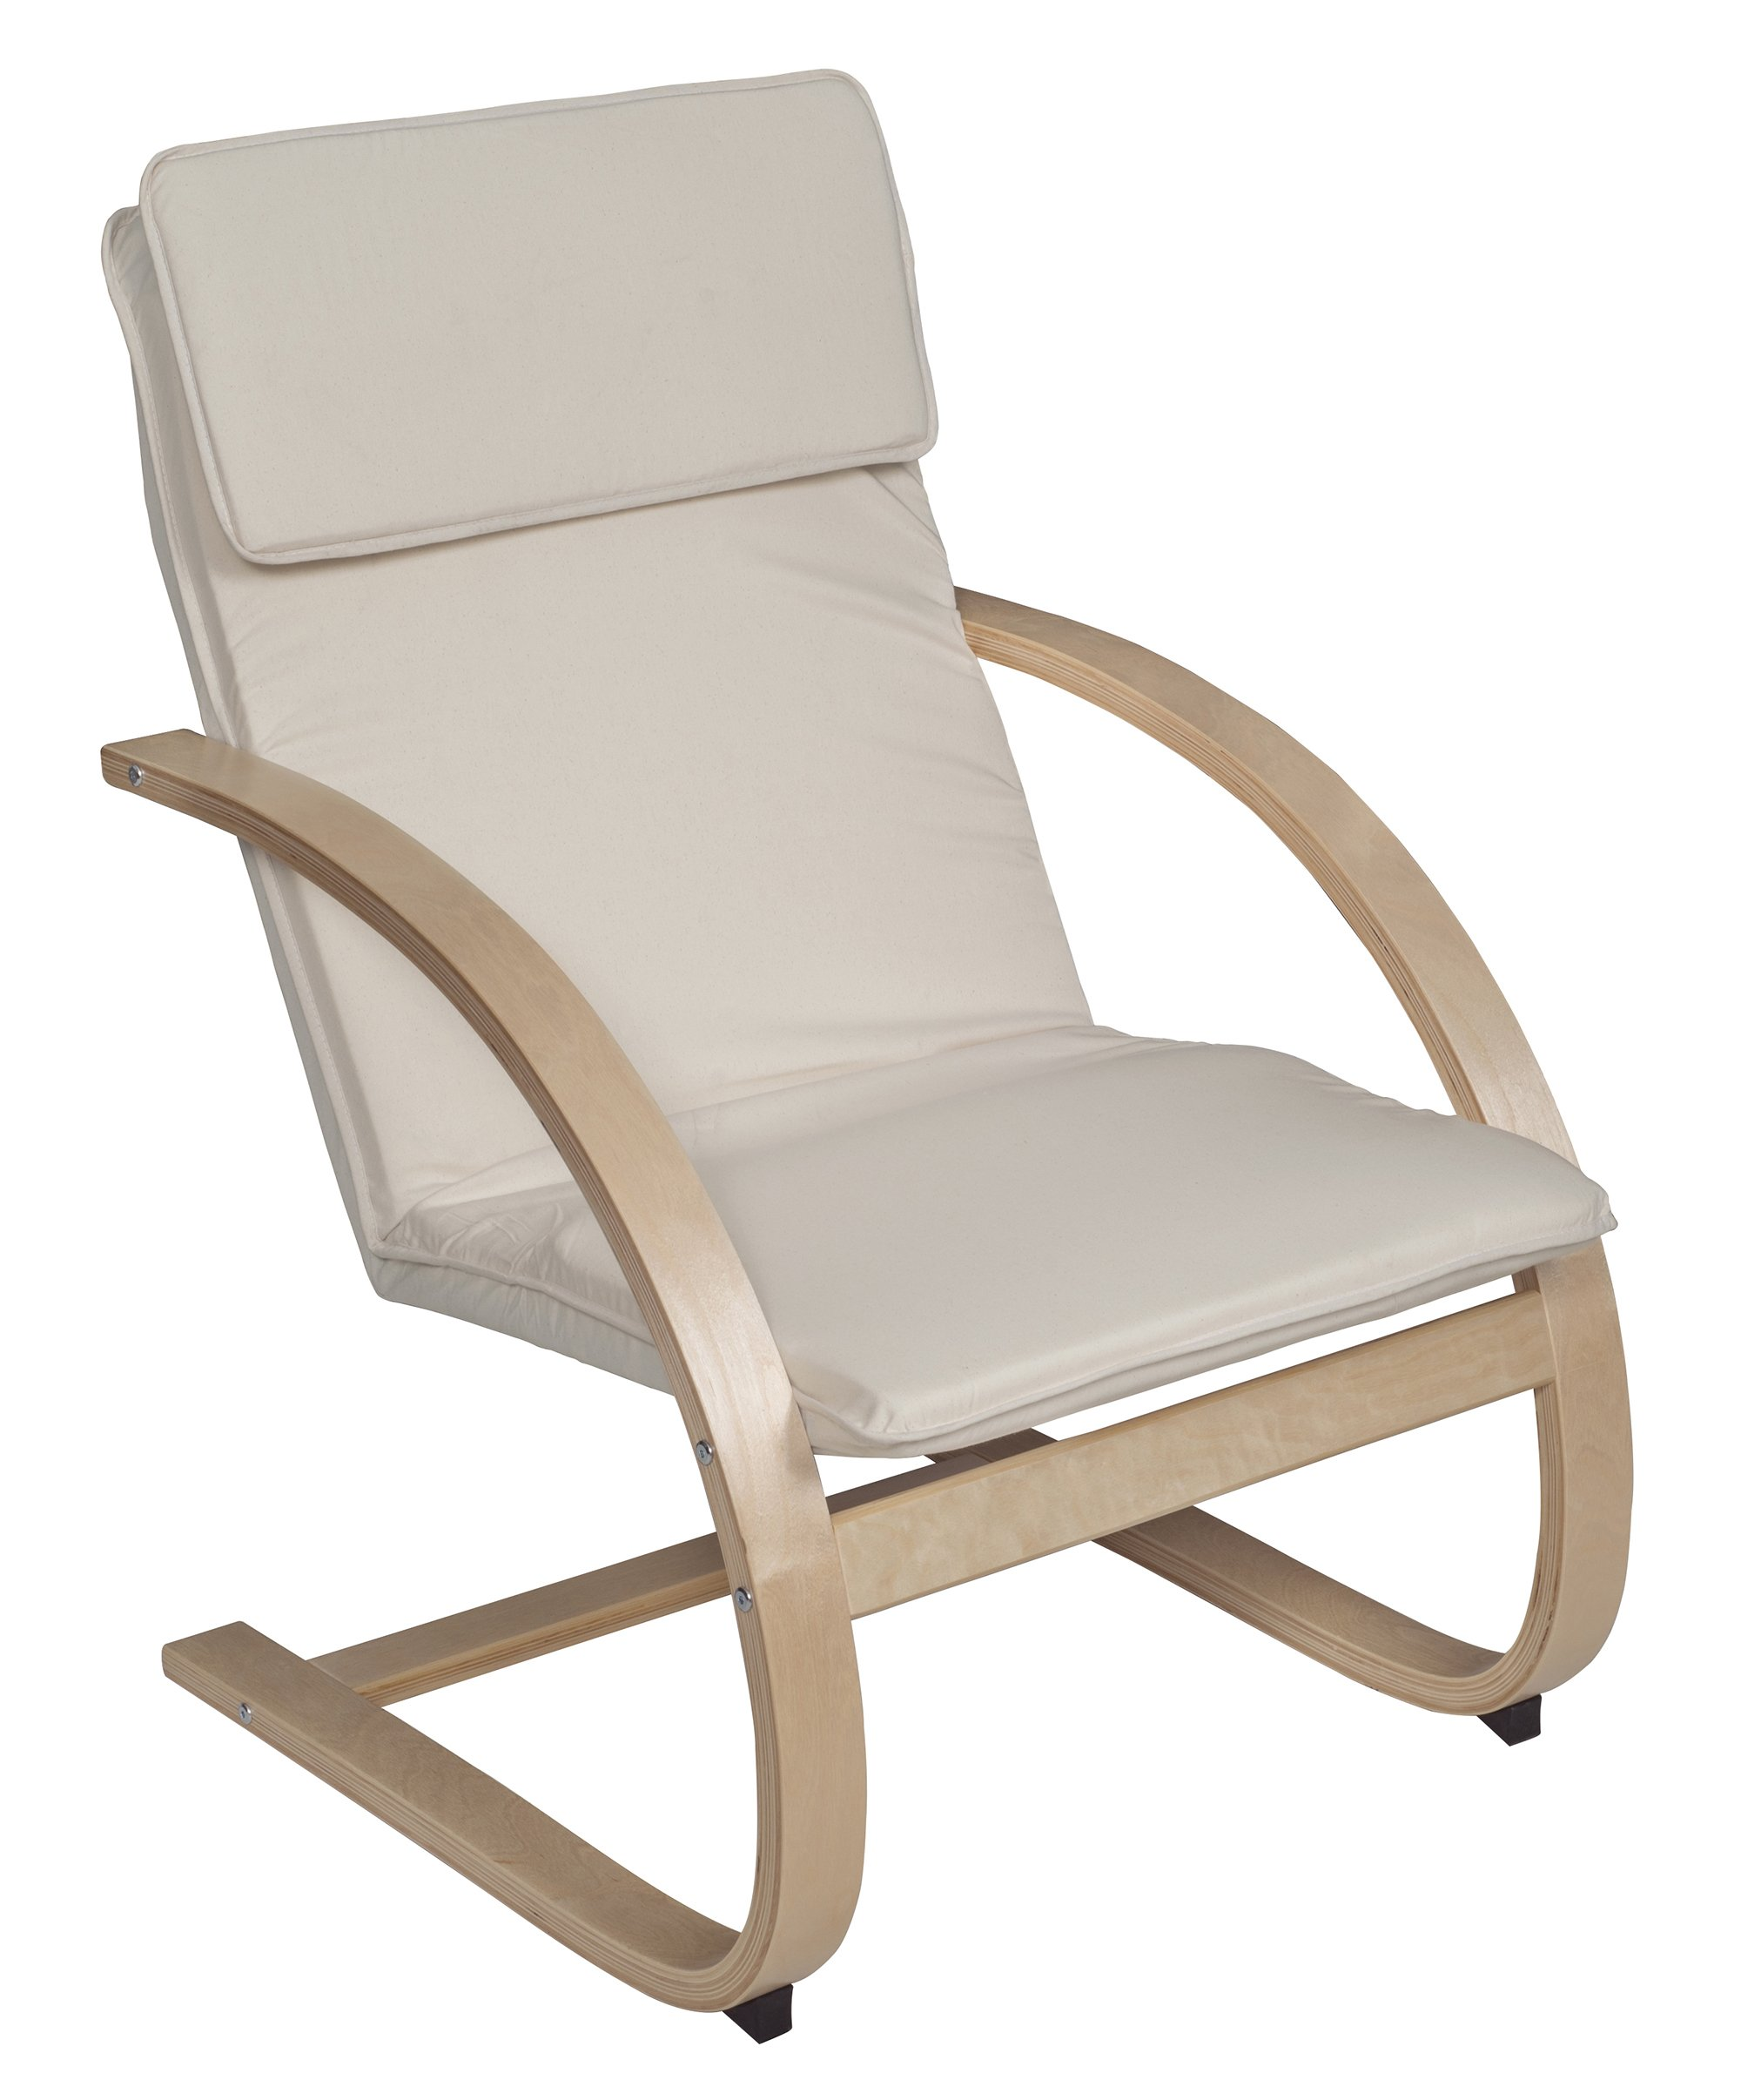 Niche Mia Reclining Bentwood Chair,Natural/Beige